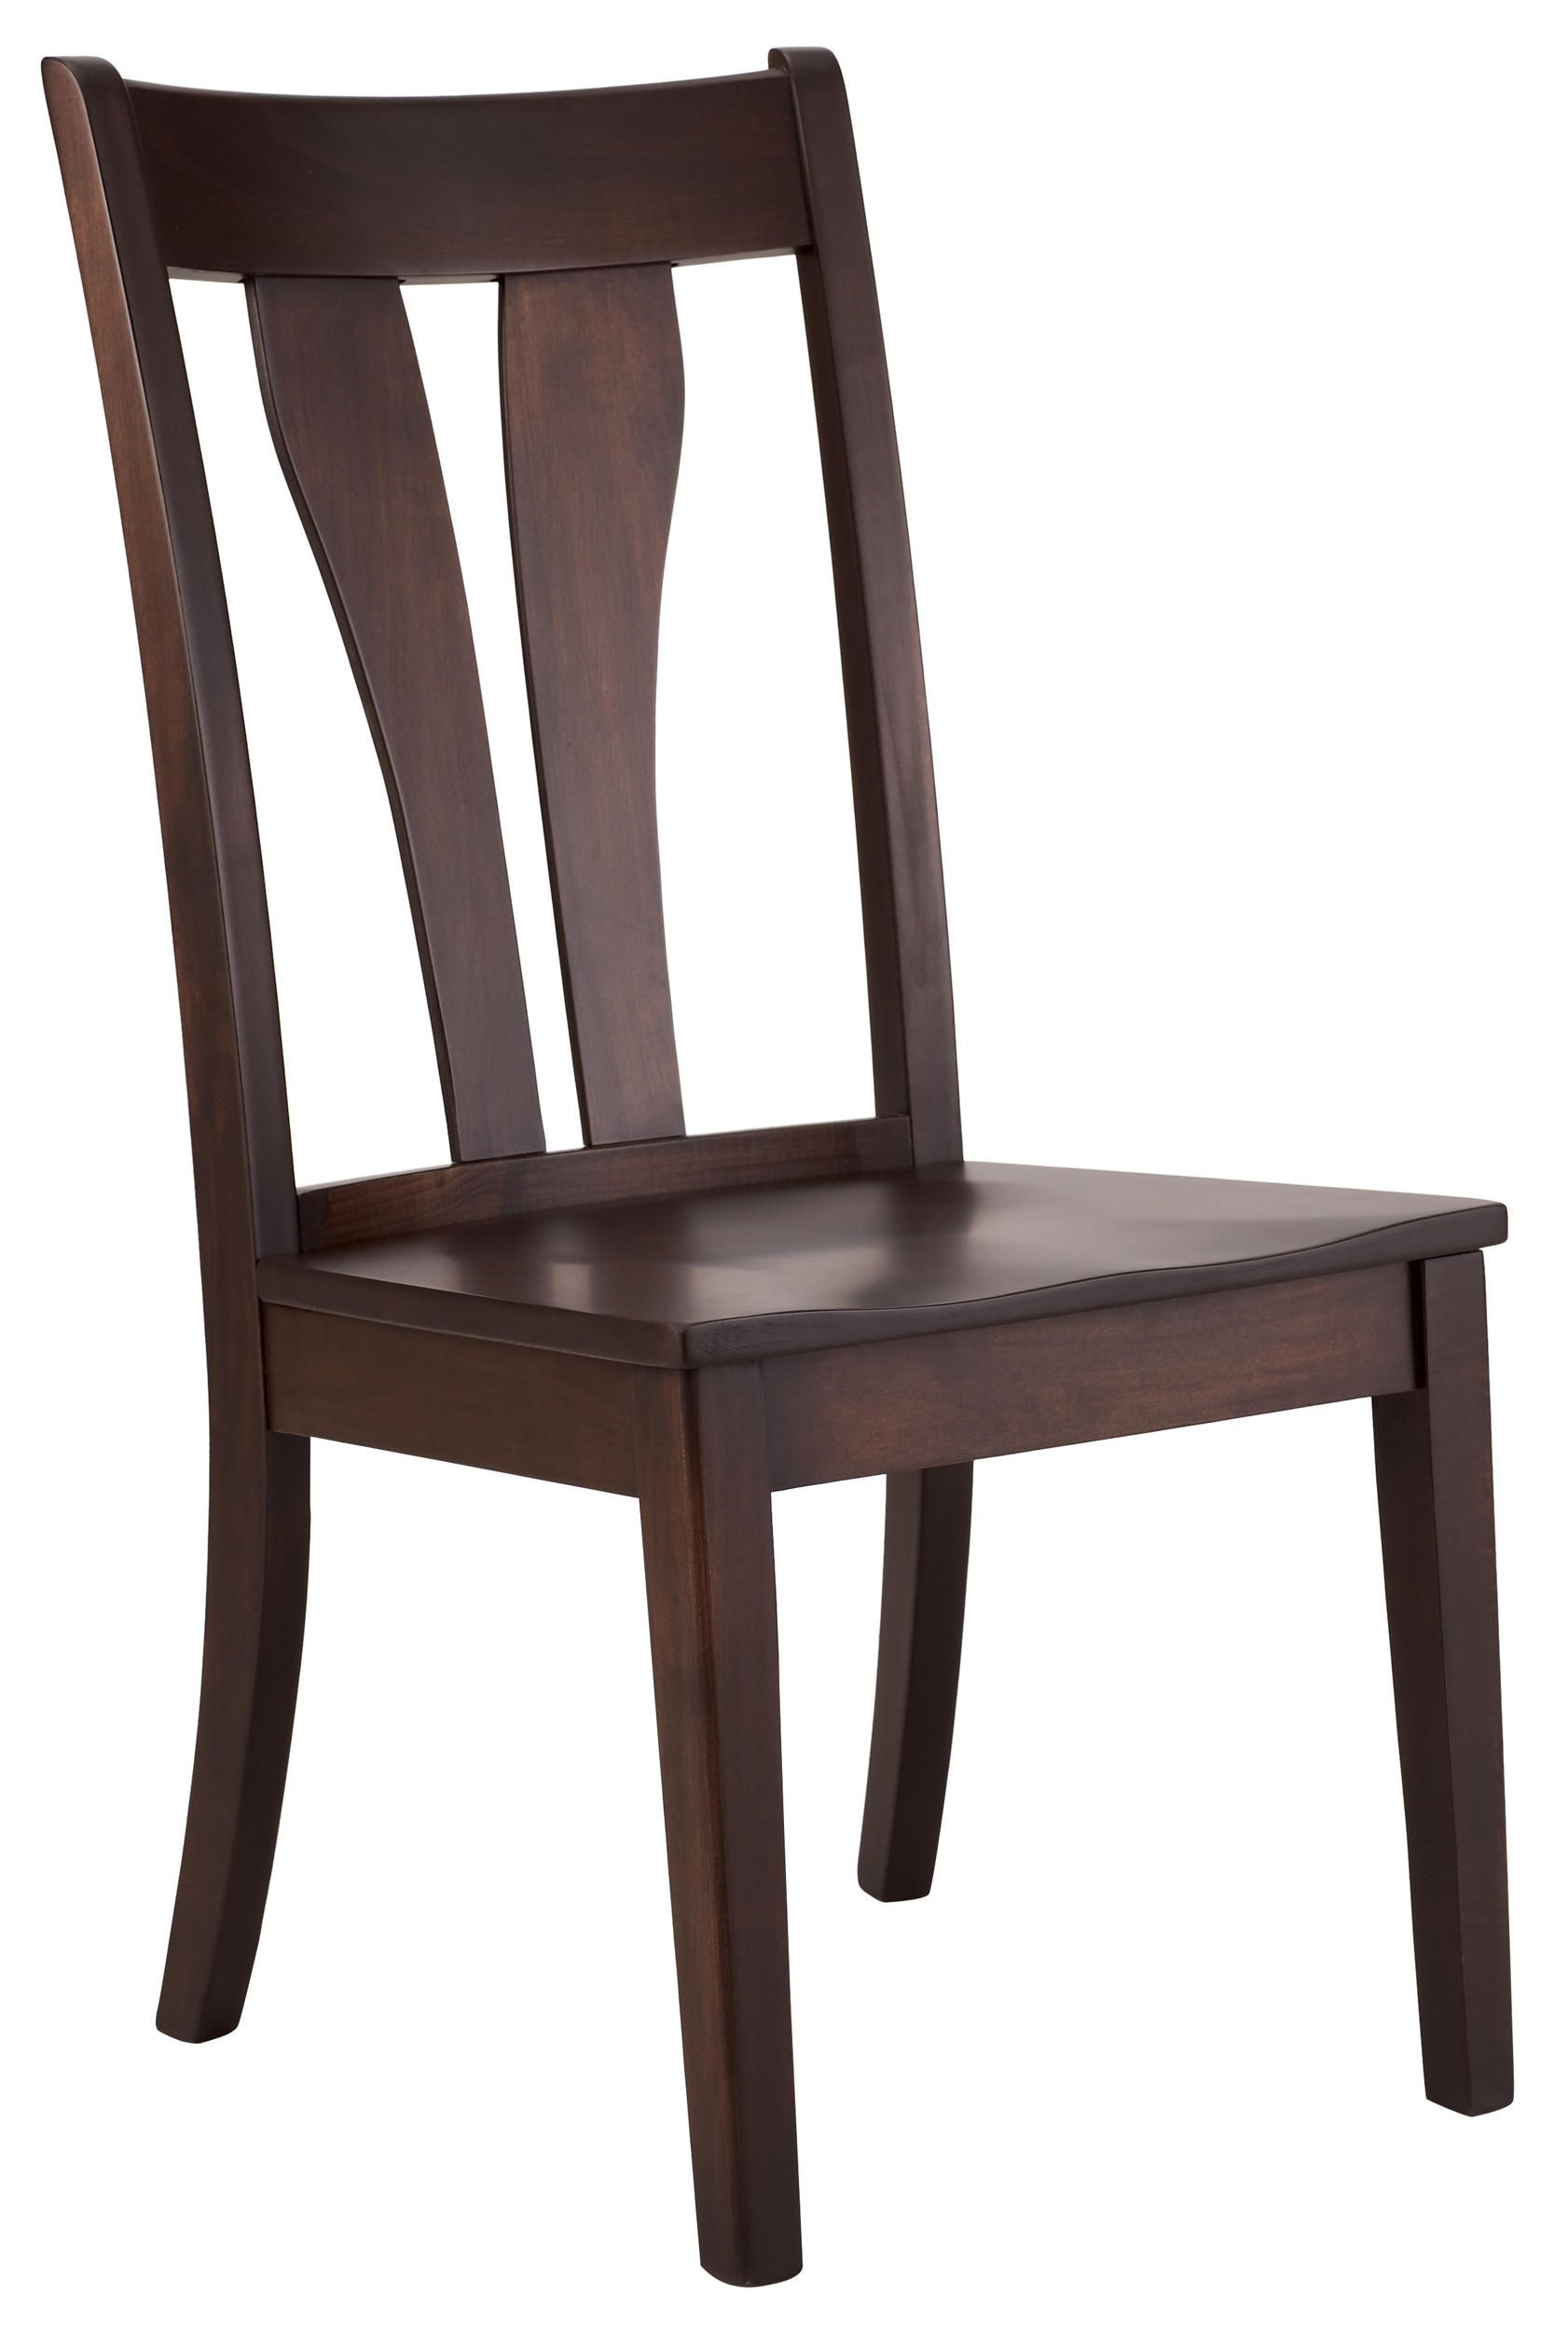 The Covina Arch Side Chair Has A Solid Maple Arched Slat Back With